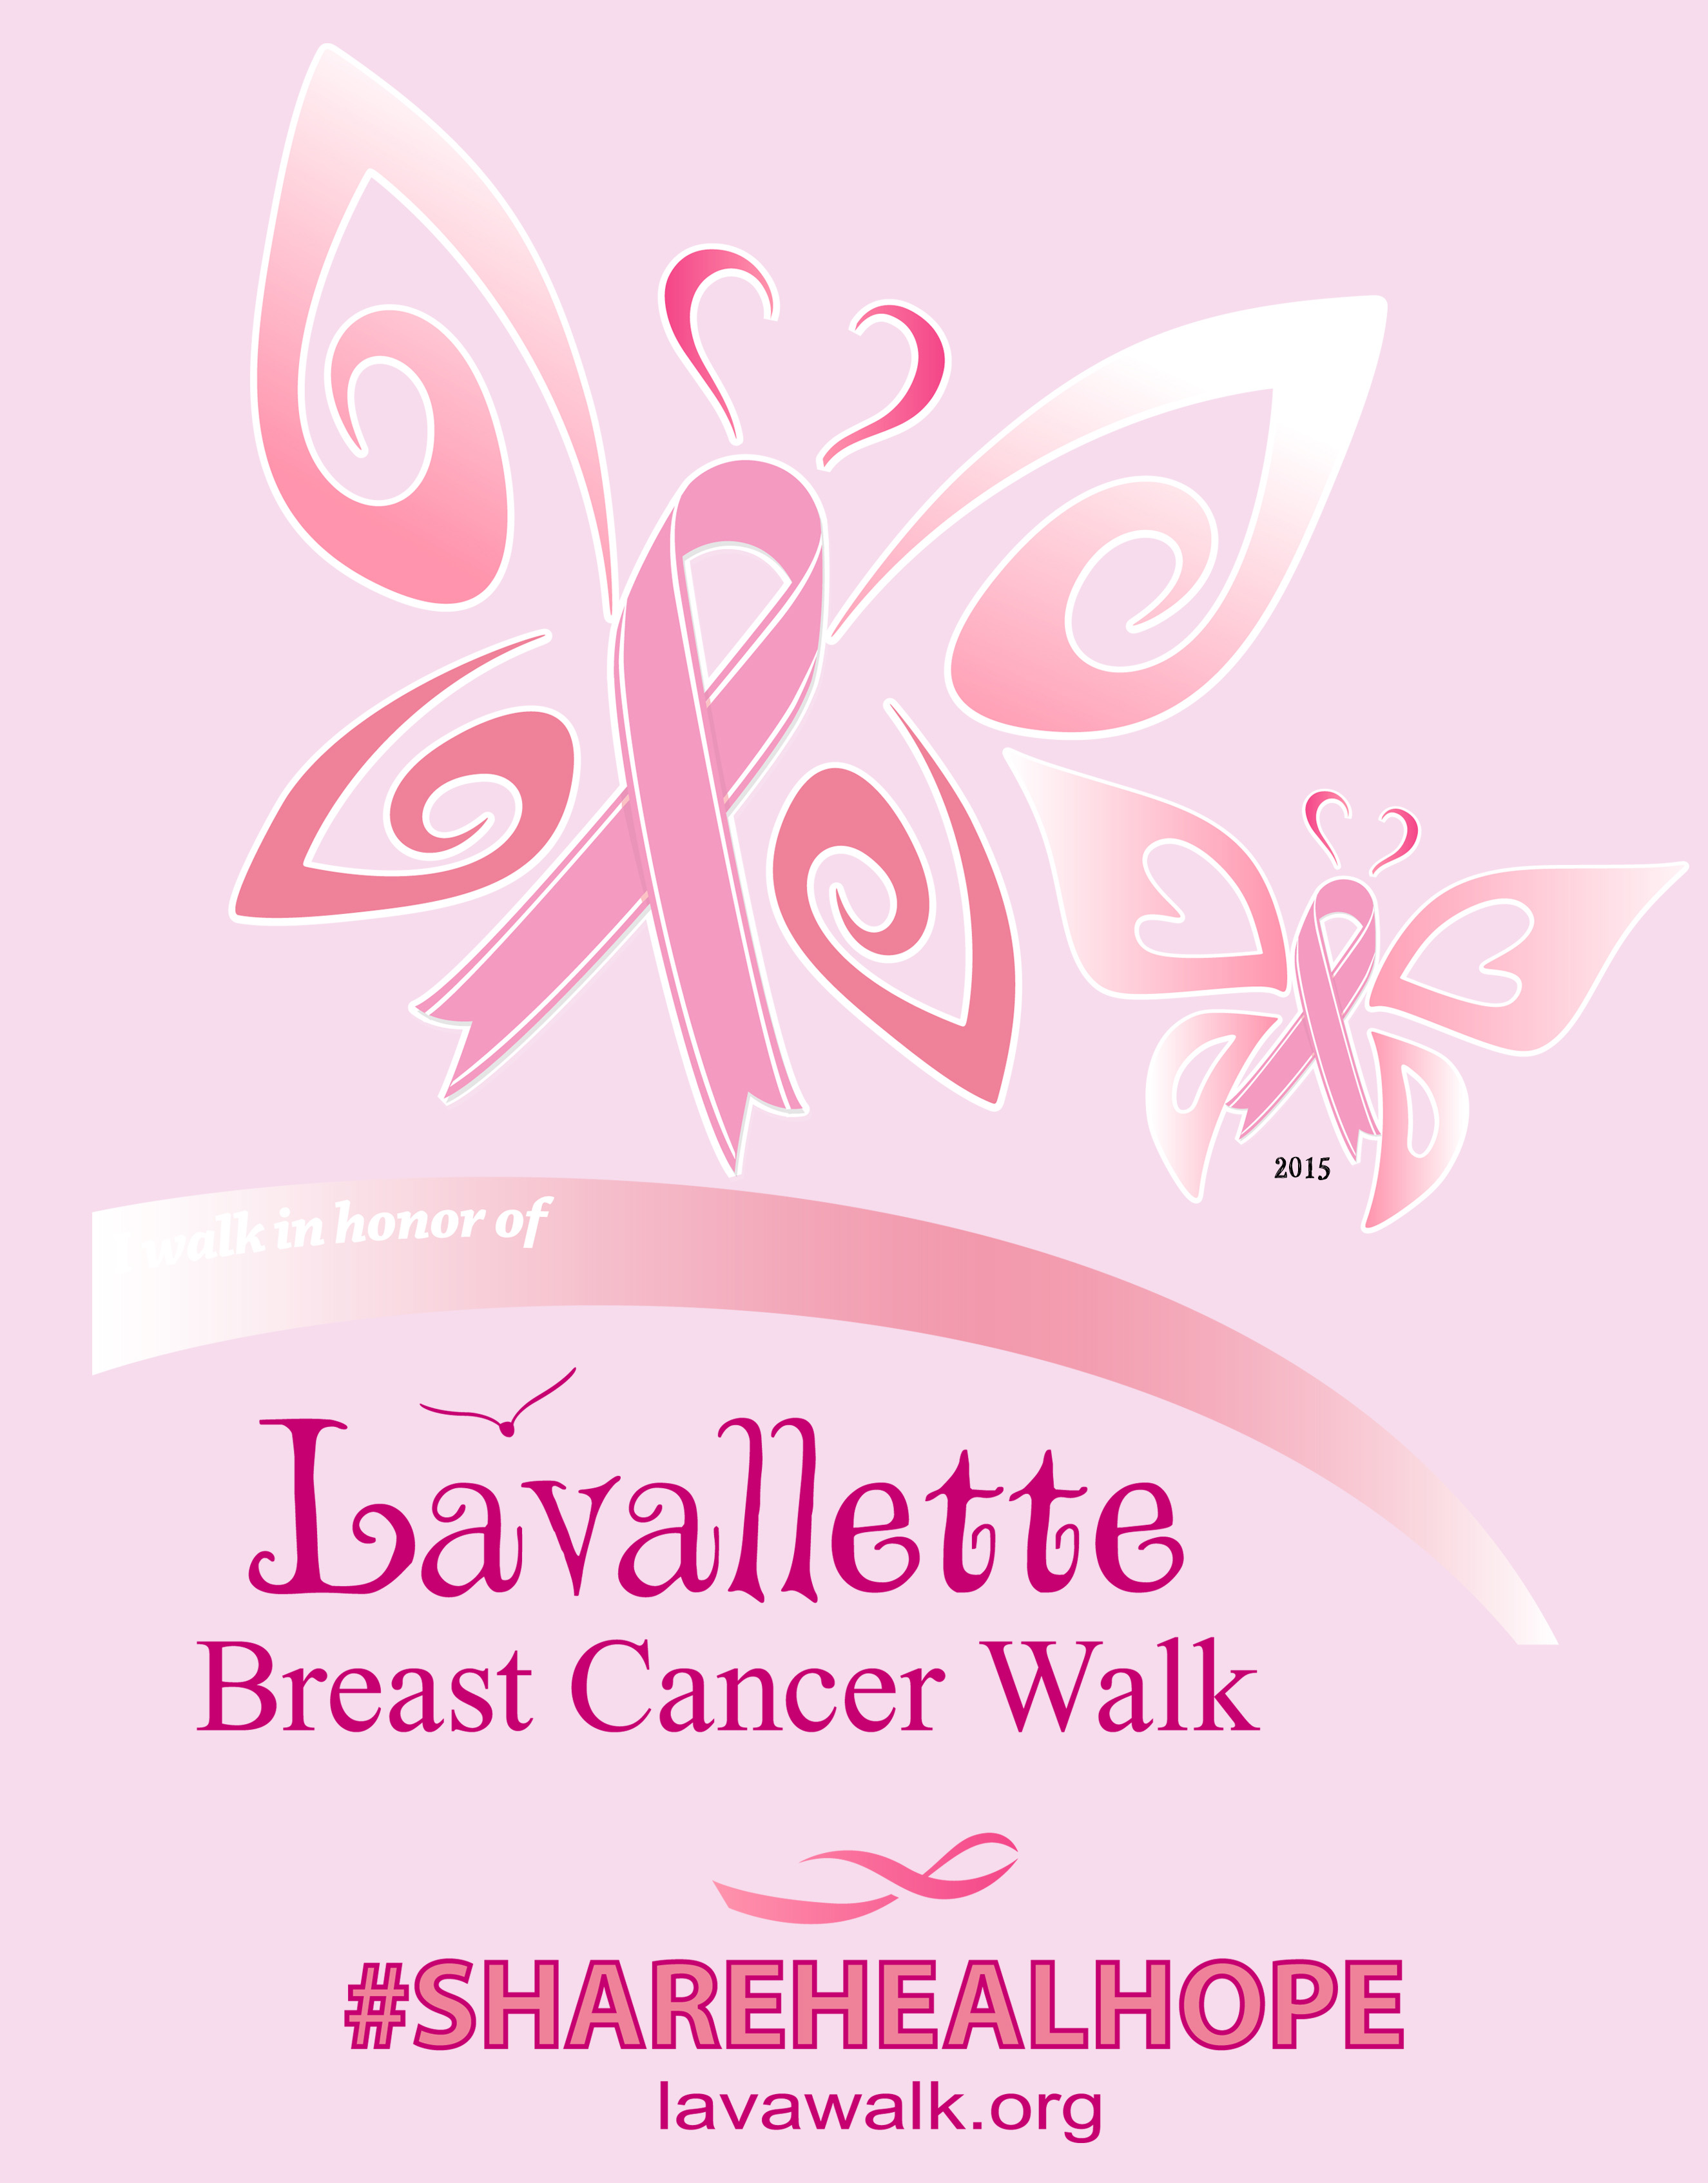 Lavallette Breast Cancer Walk